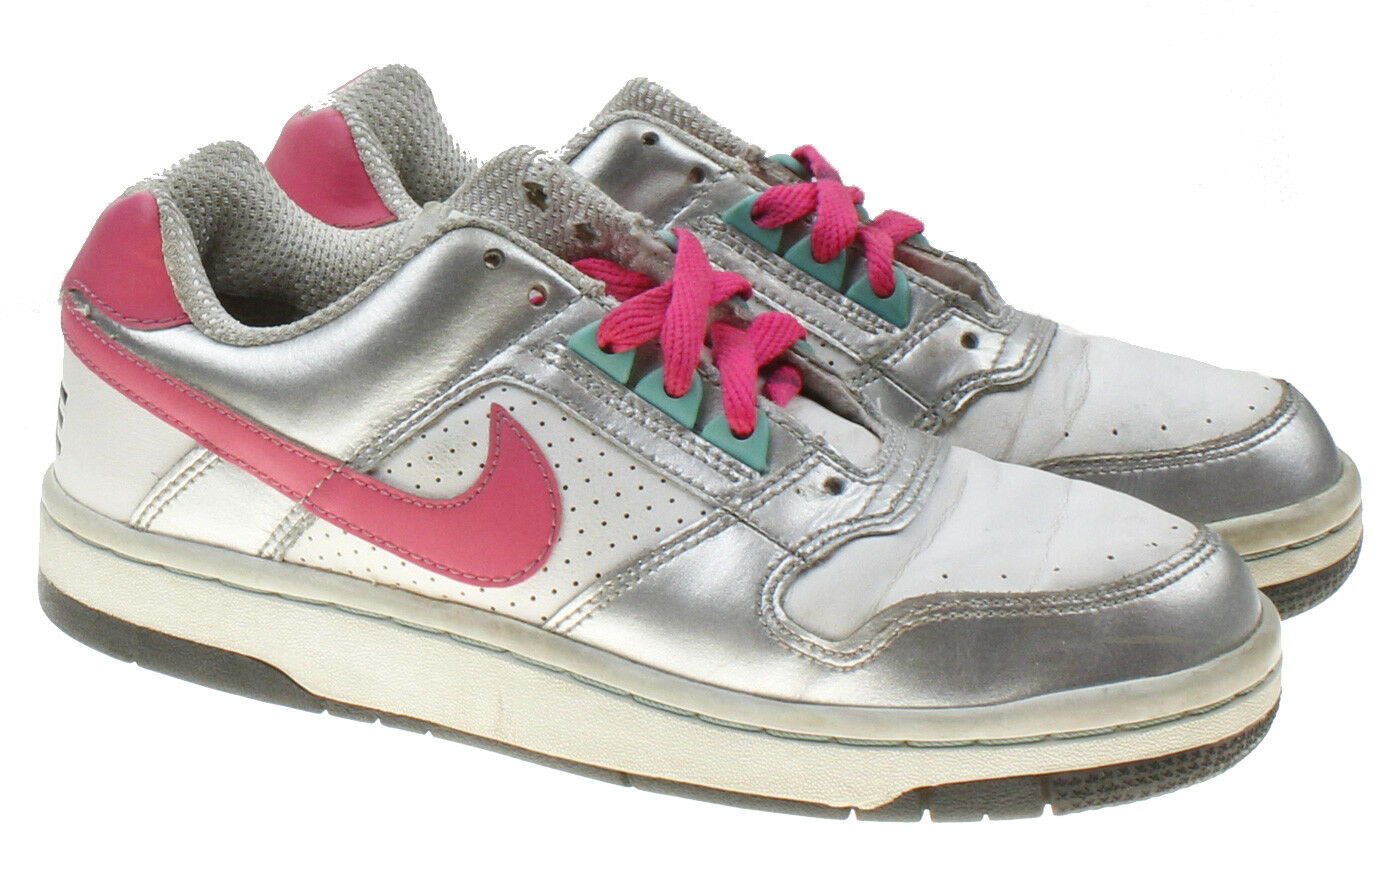 Nike Dunk Low GS – White/Metallic Silver Pink VTG Kids 4.5Y Womens 6 Sneakers